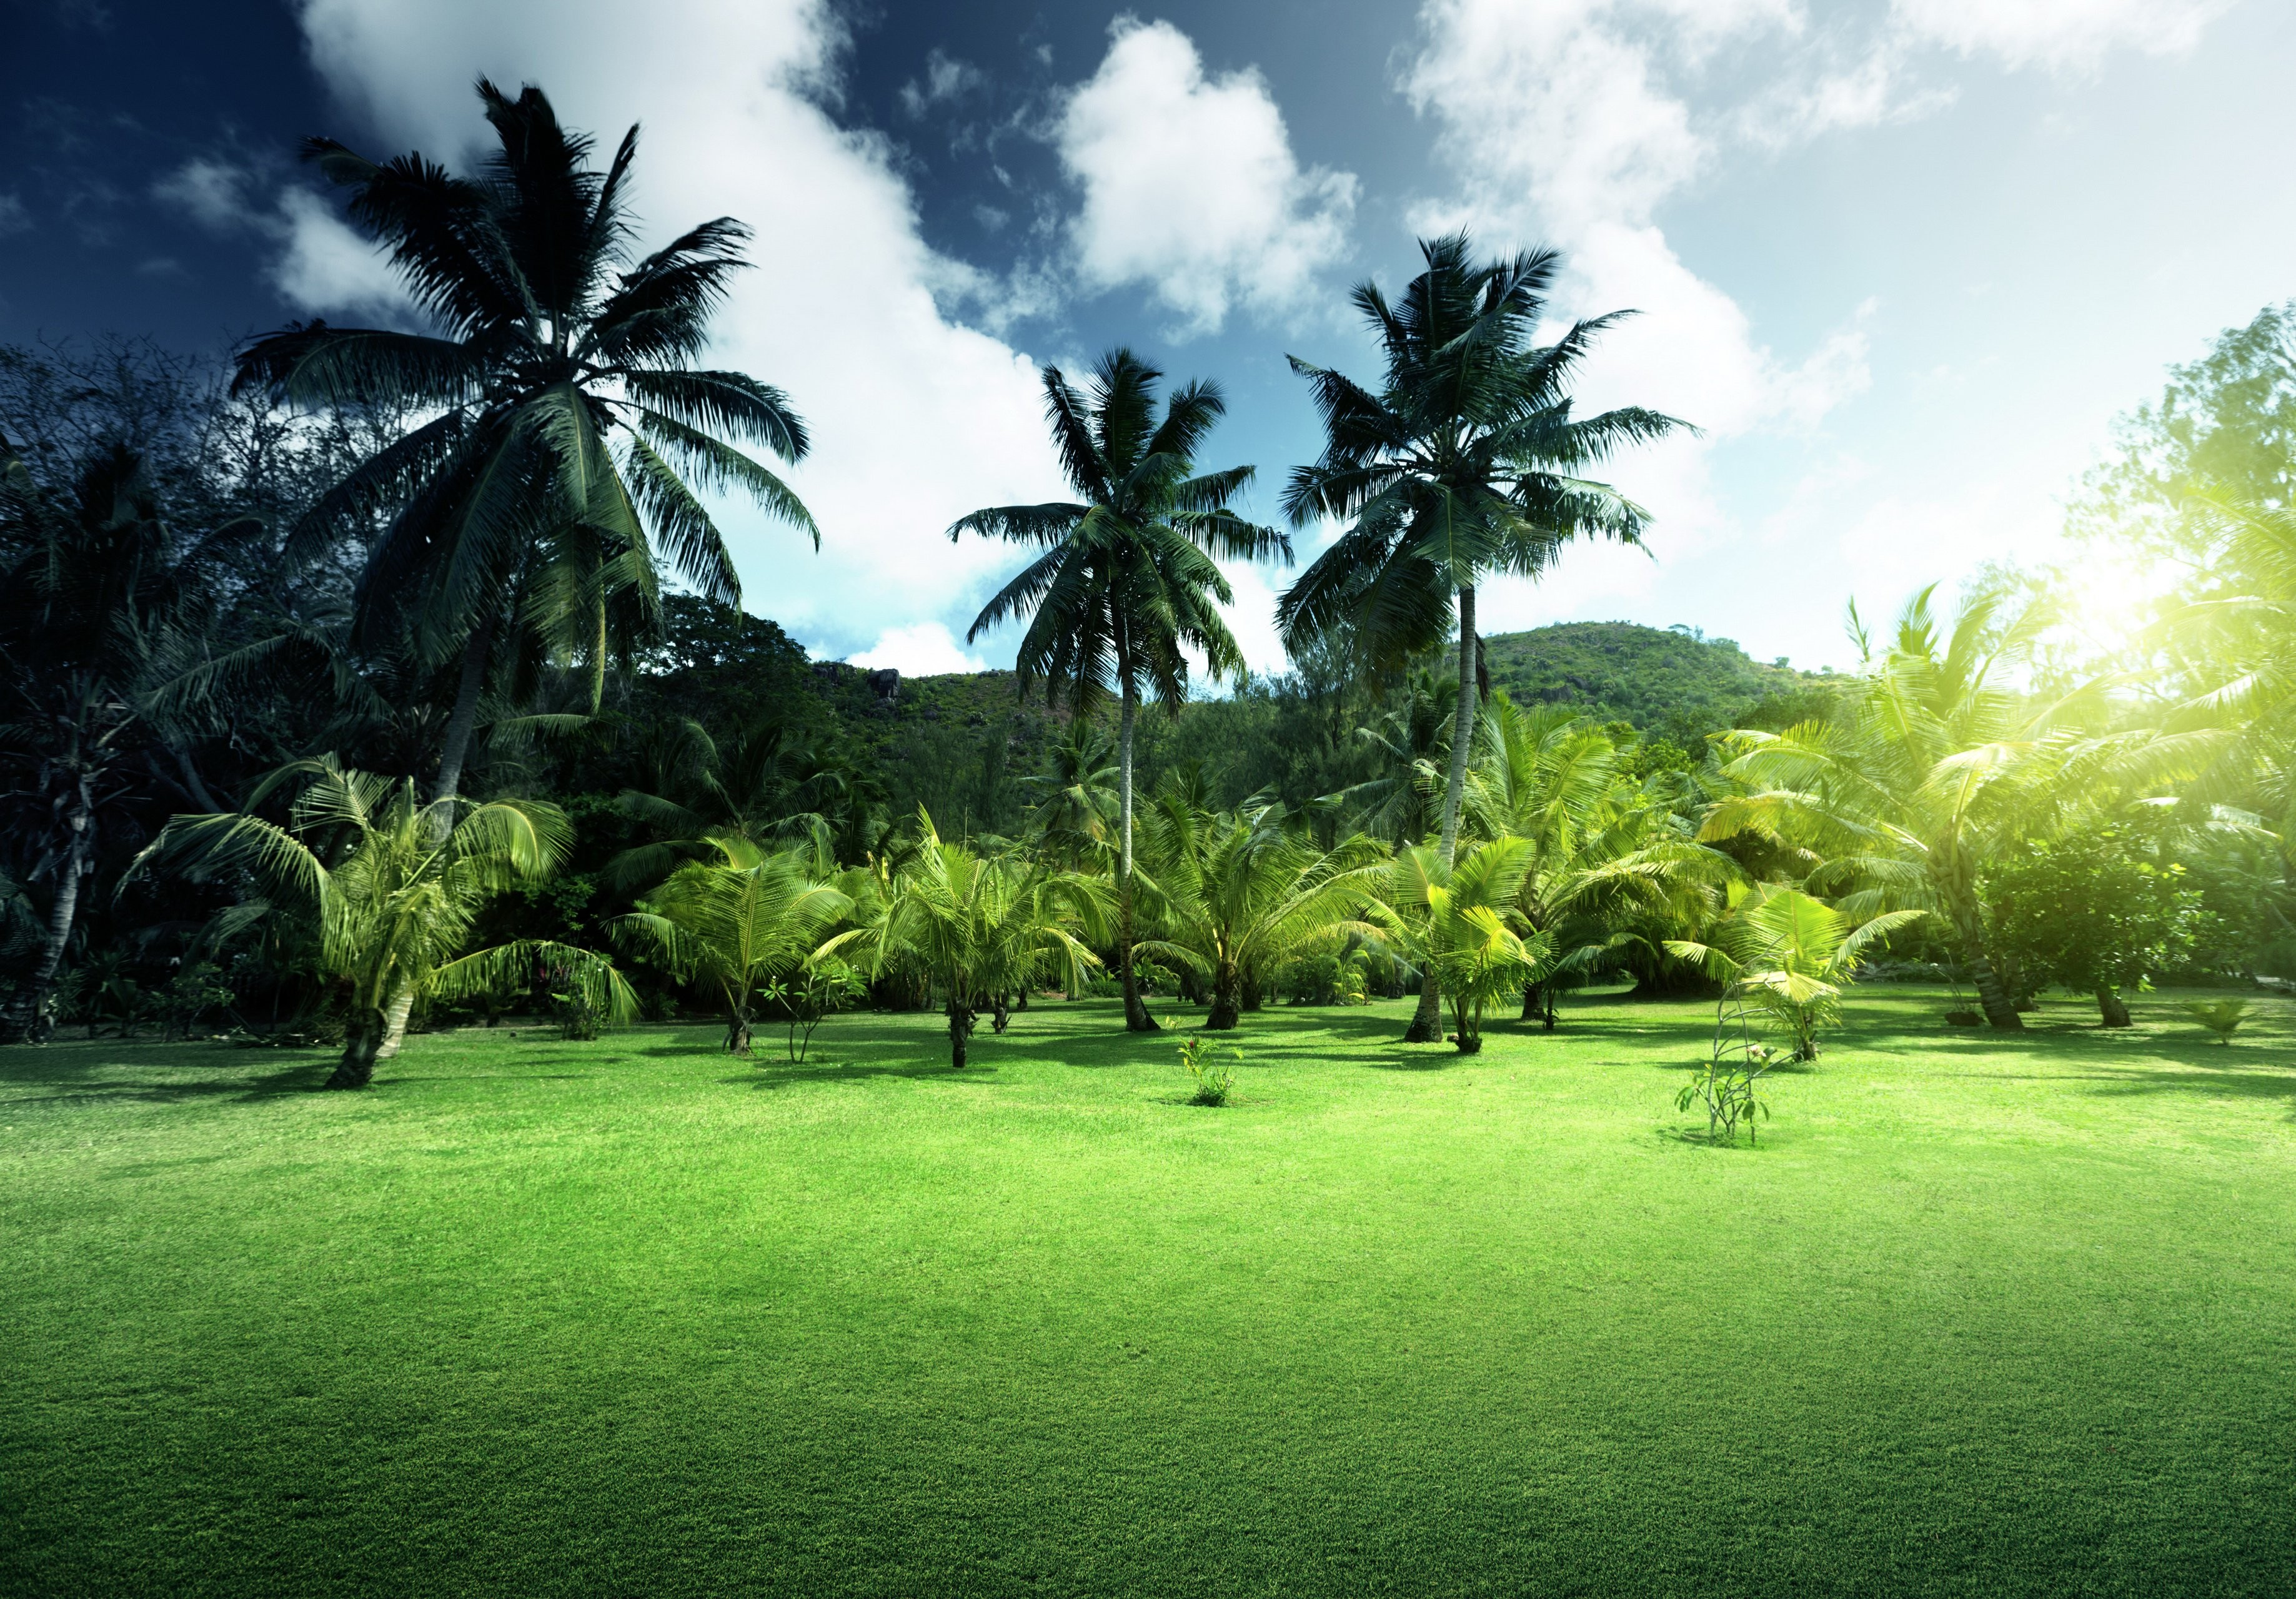 Landscapes Nature Palm Grass Scenery Sky Hd Latest - Grass Scenery , HD Wallpaper & Backgrounds